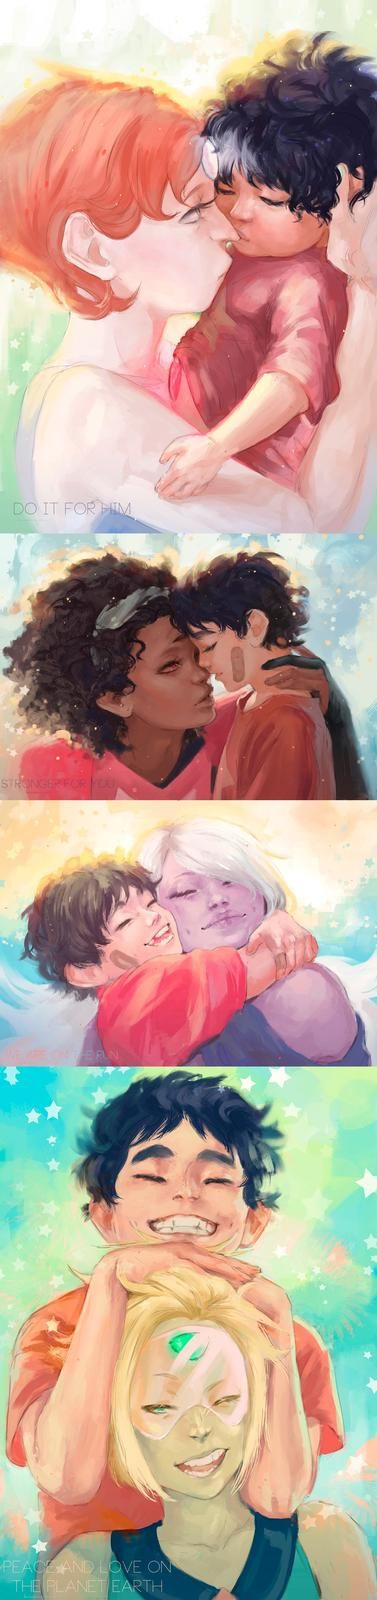 """""""The Crystal Gems and their Steven"""" I love seeing loving exchanges like this between Steven and his moms. I think family love is super important!! Also Peri is so cute!!!"""